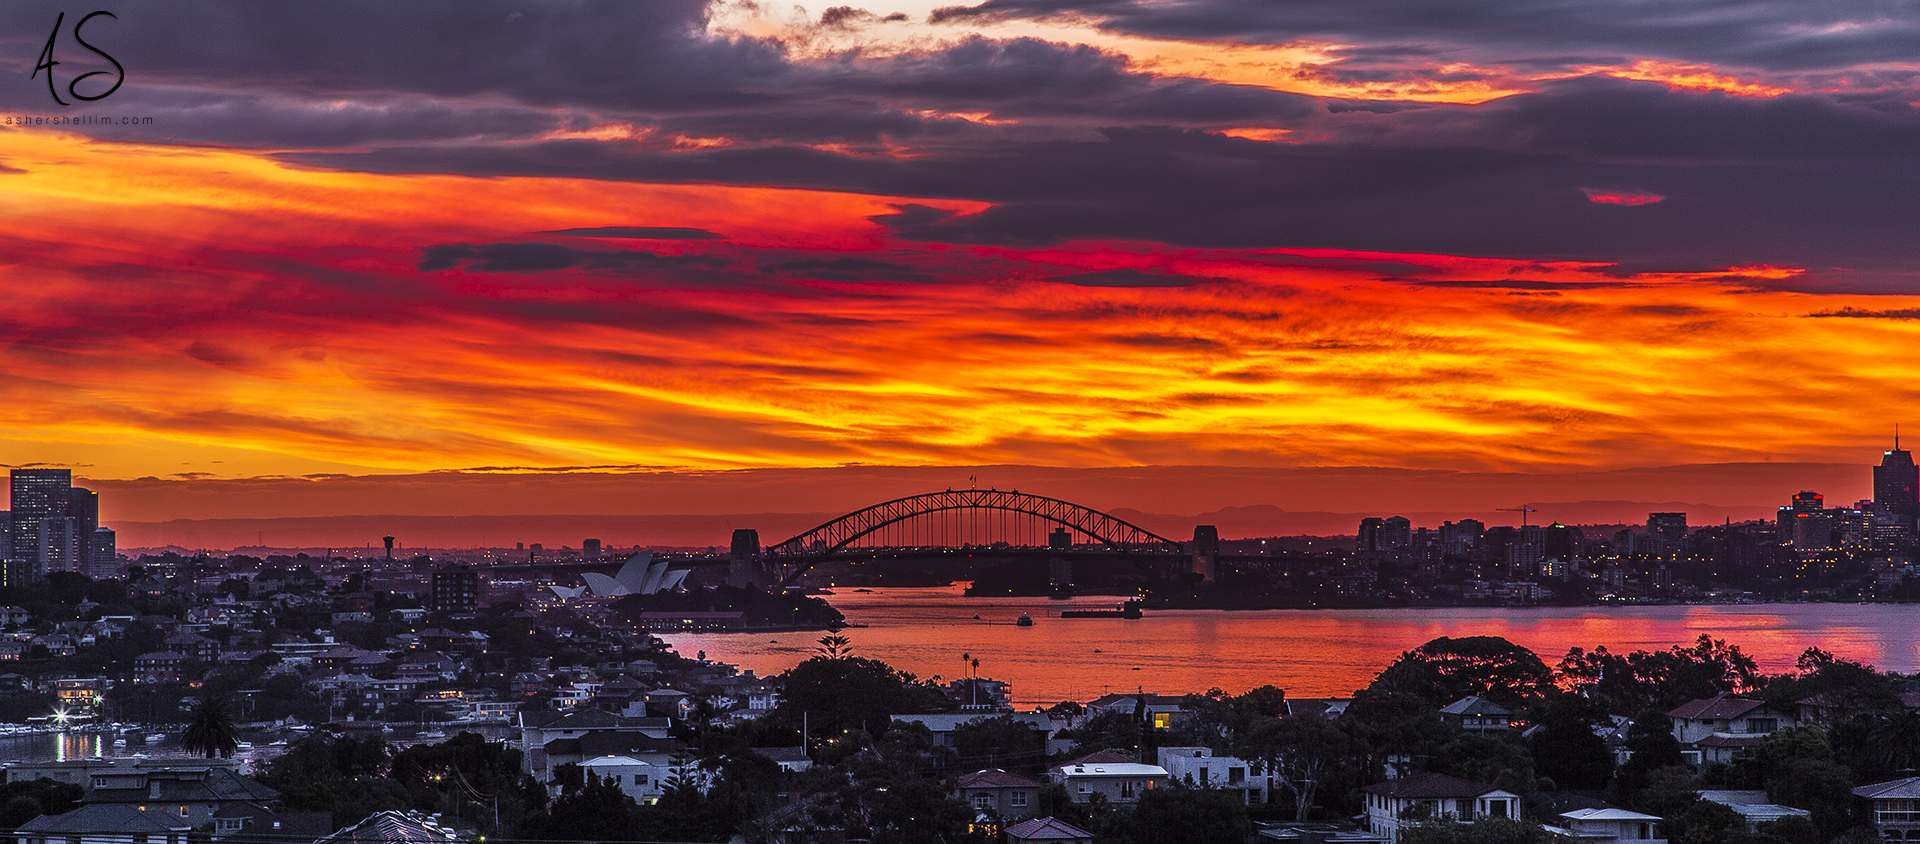 ' Blanket of Fire '  Sydney 5:15 Pm, 20 May 2014